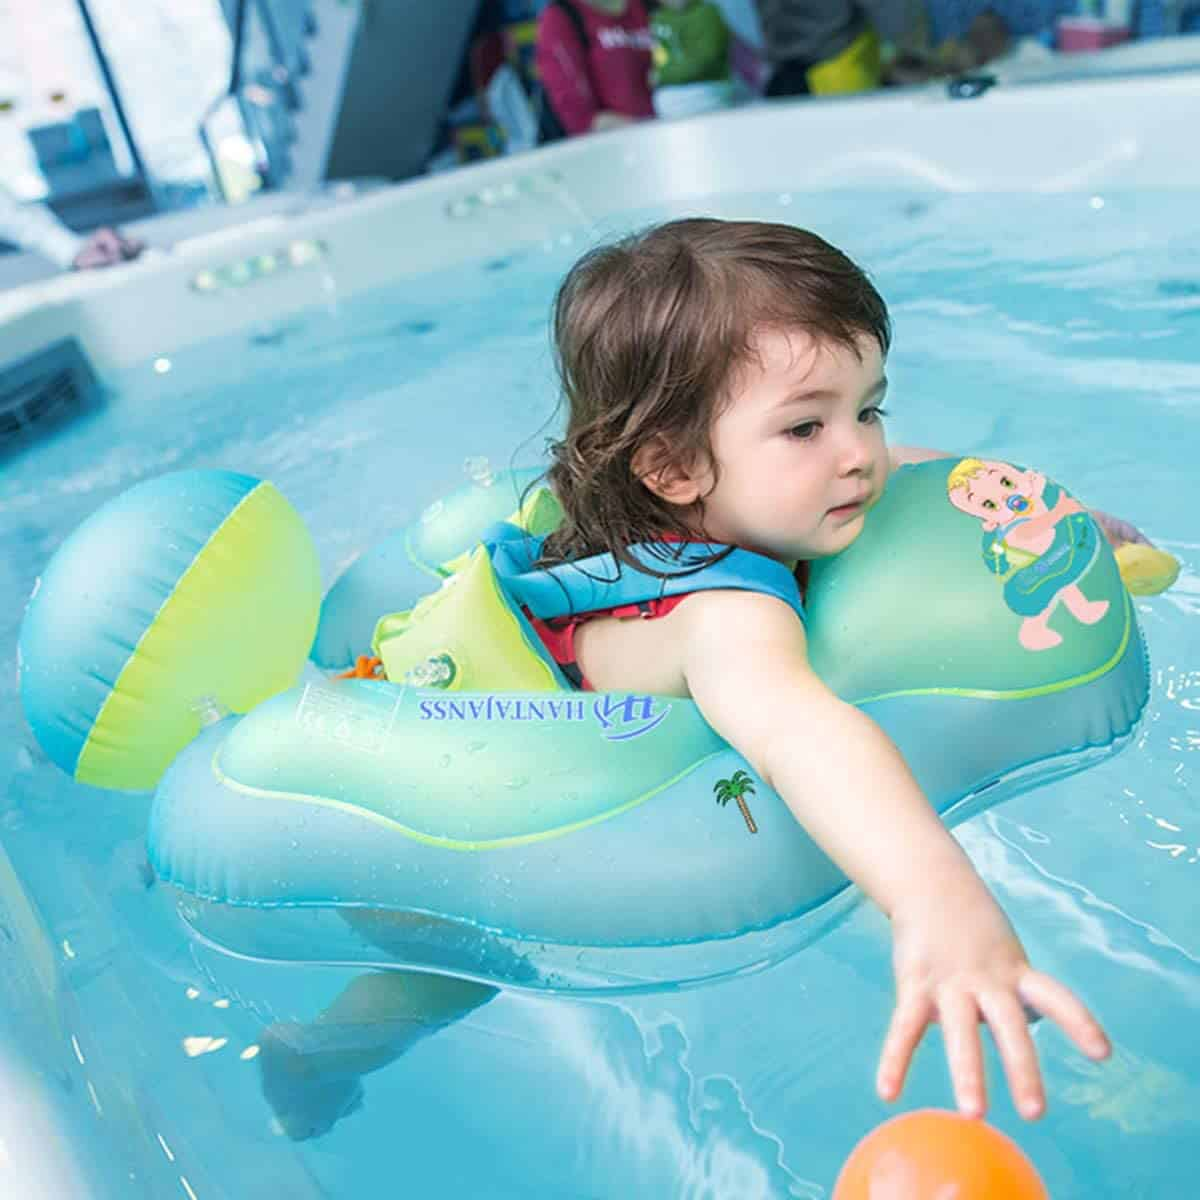 This is an image of a baby girl playing on a baby pool swim float. She is having fun while trying to swim and reach to toys on the pool float.